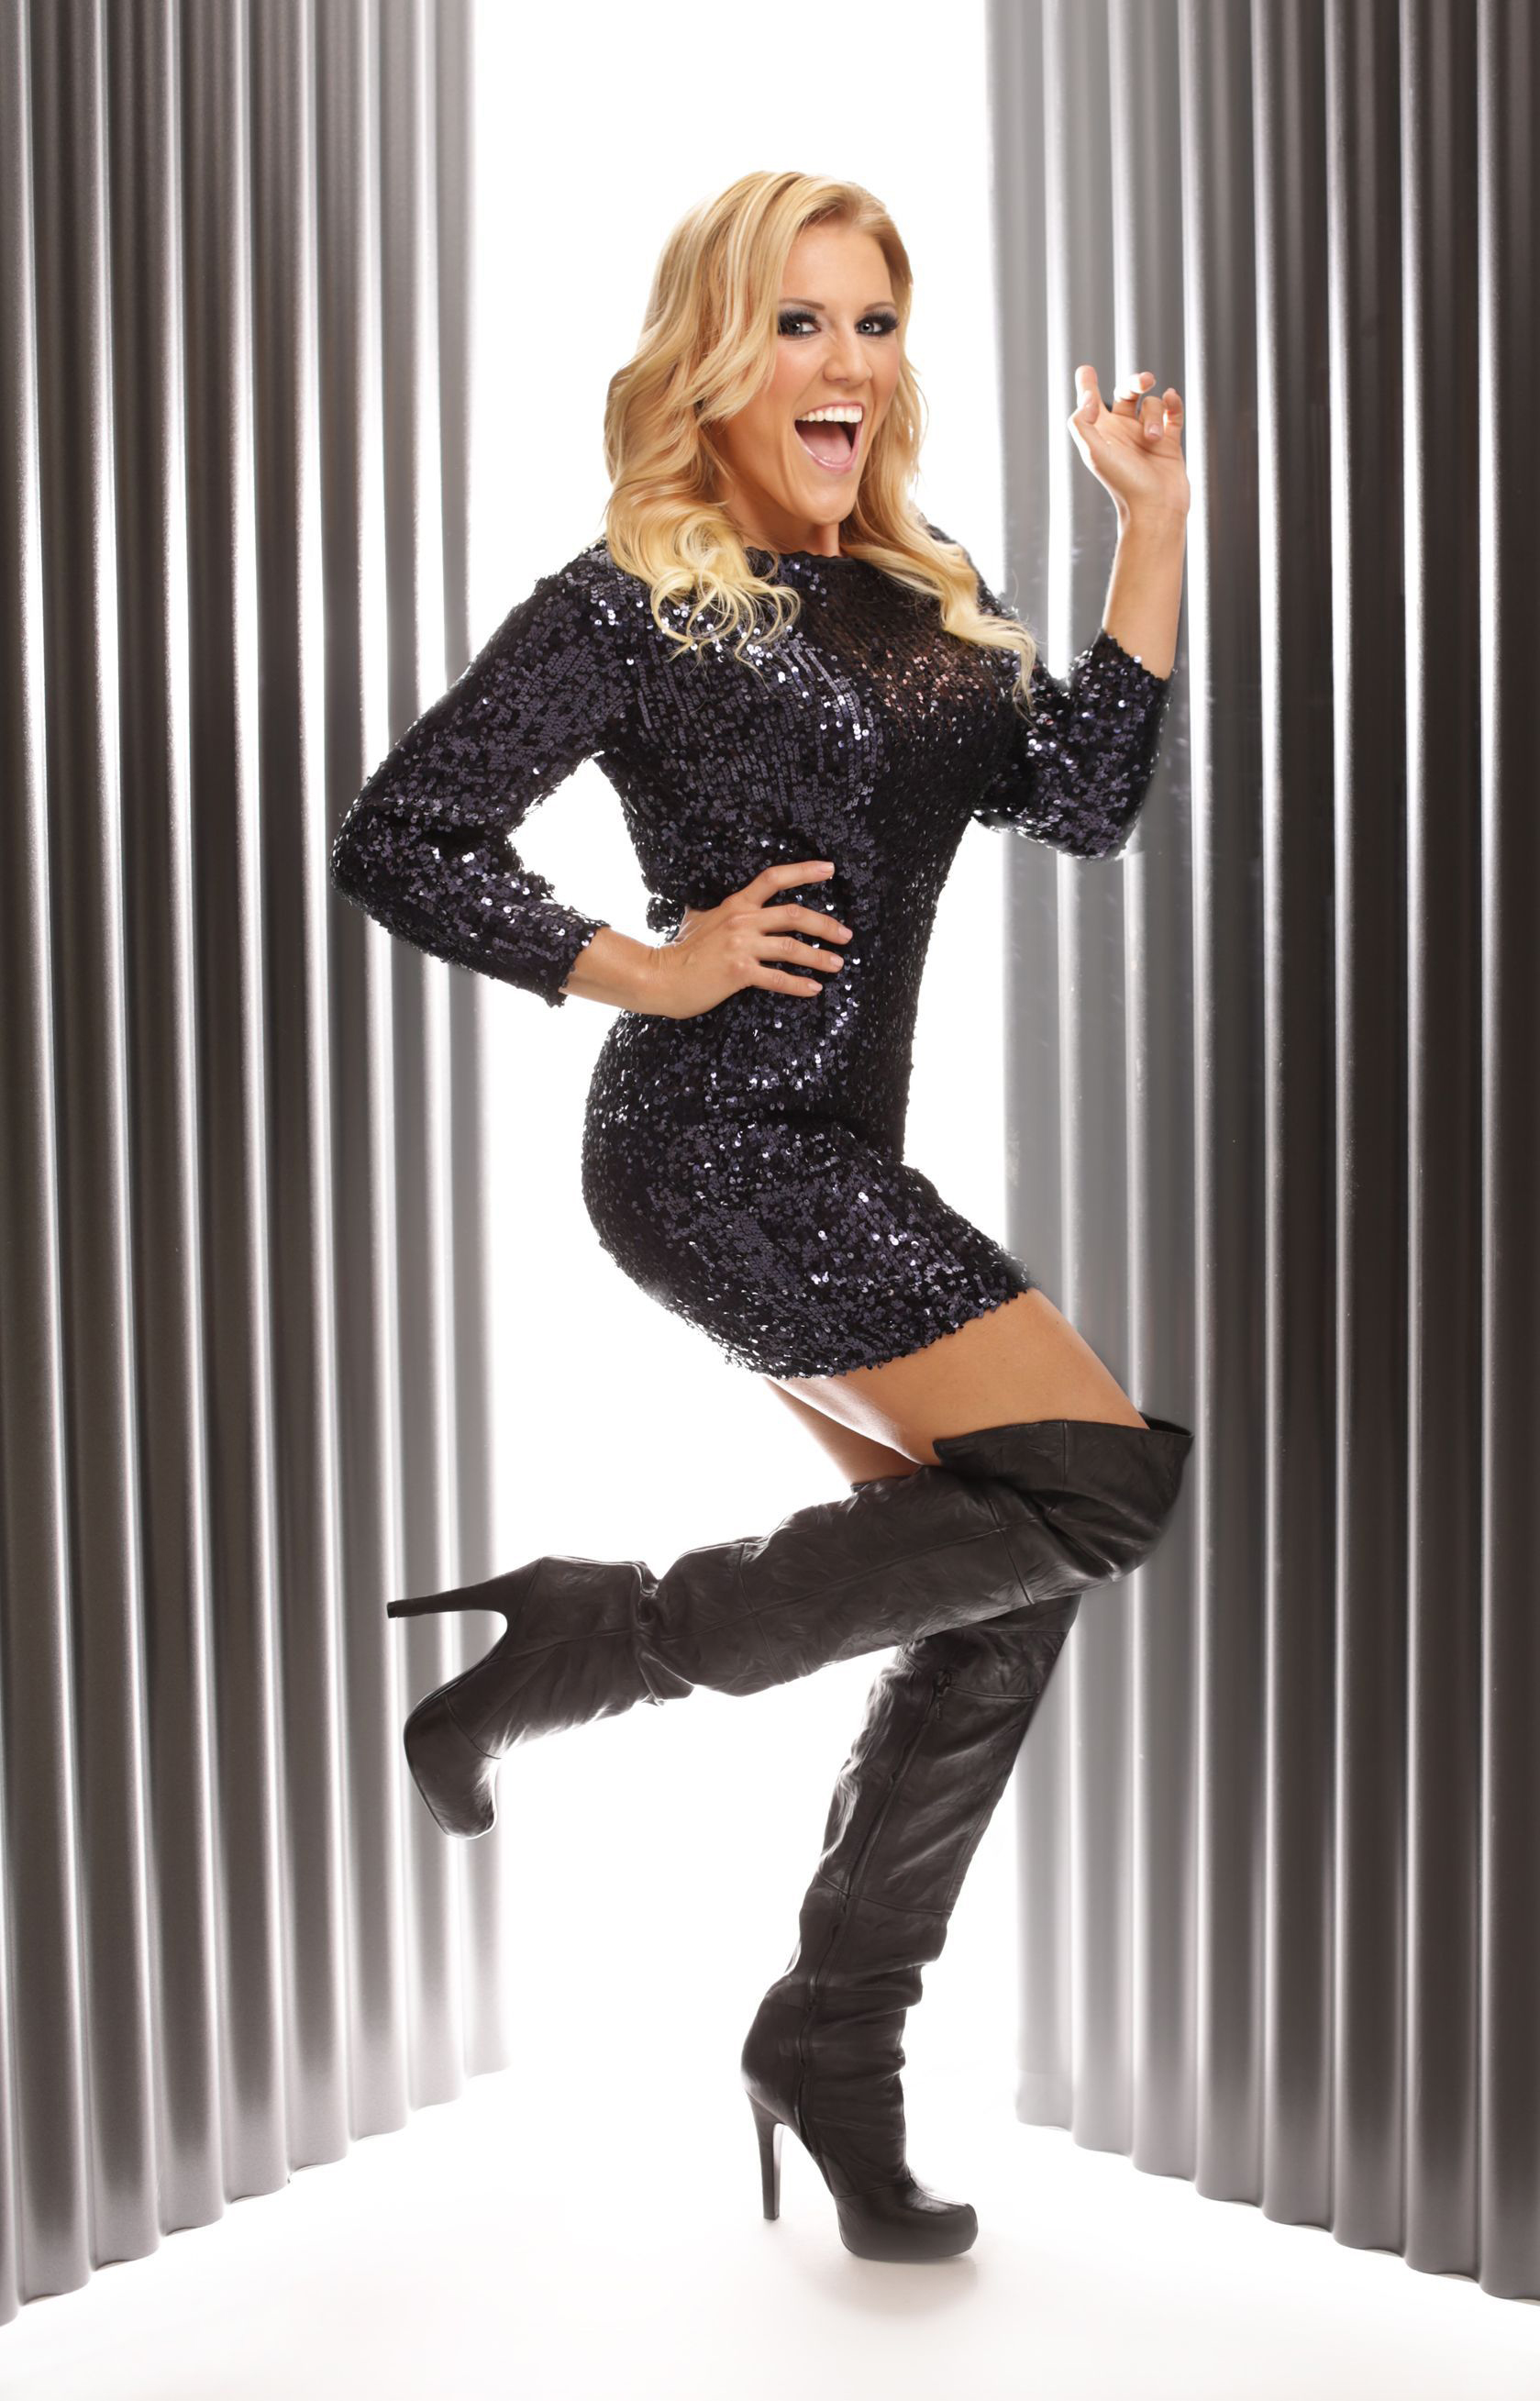 Eurovision 2013: 12 songs from the contest which aren't by Bonnie Tyler